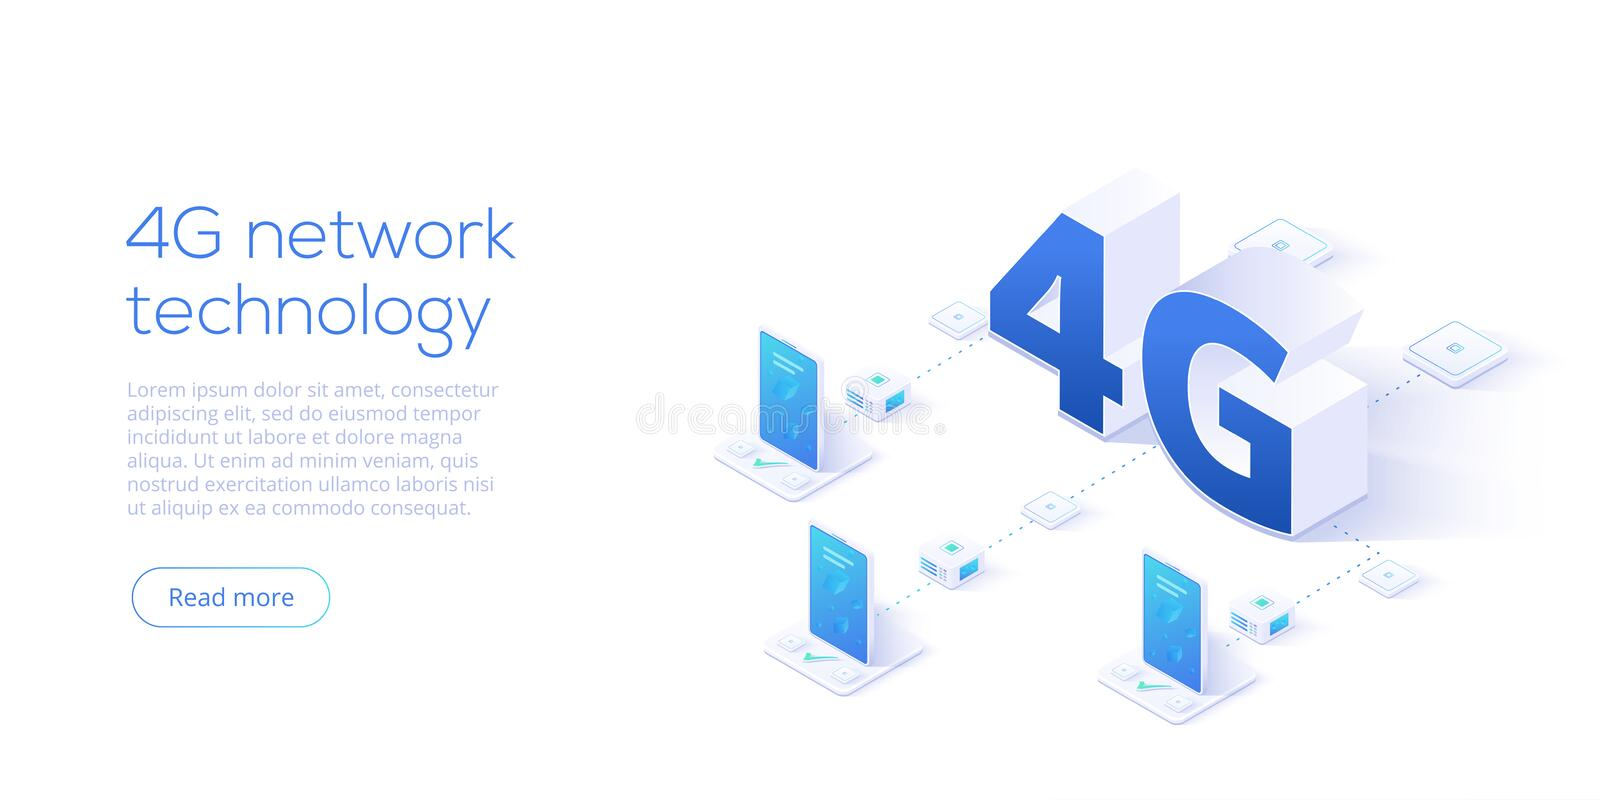 4g network technology in isometric vector illustration. Wireless. Mobile telecommunication service concept. Marketing website landing template. Smartphone stock illustration